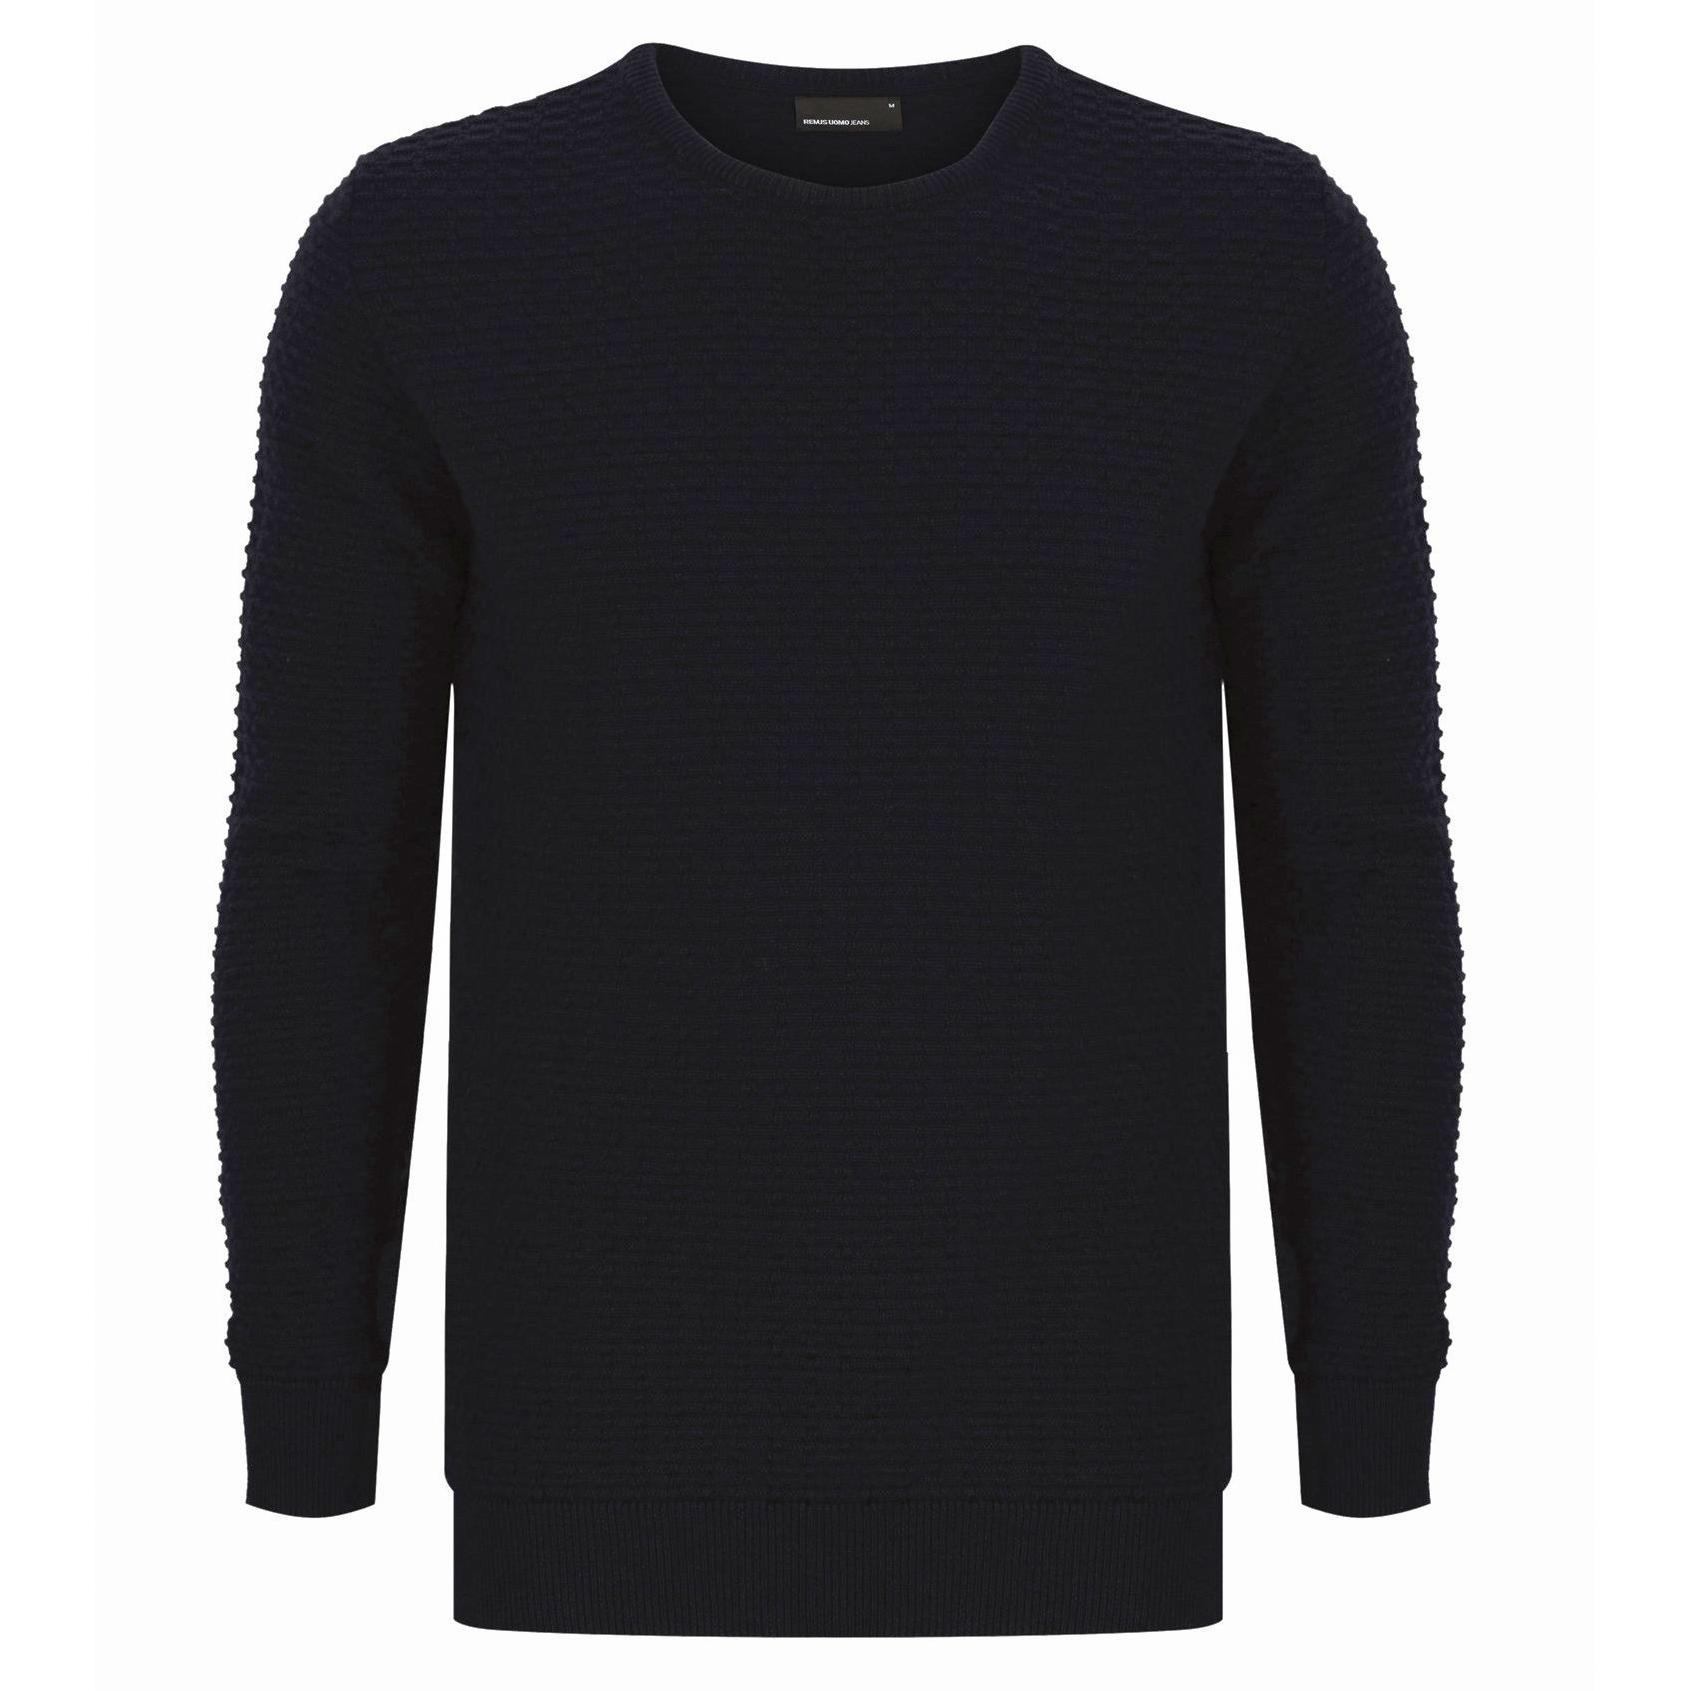 Crew neck Sweater Navy - Leonard Silver